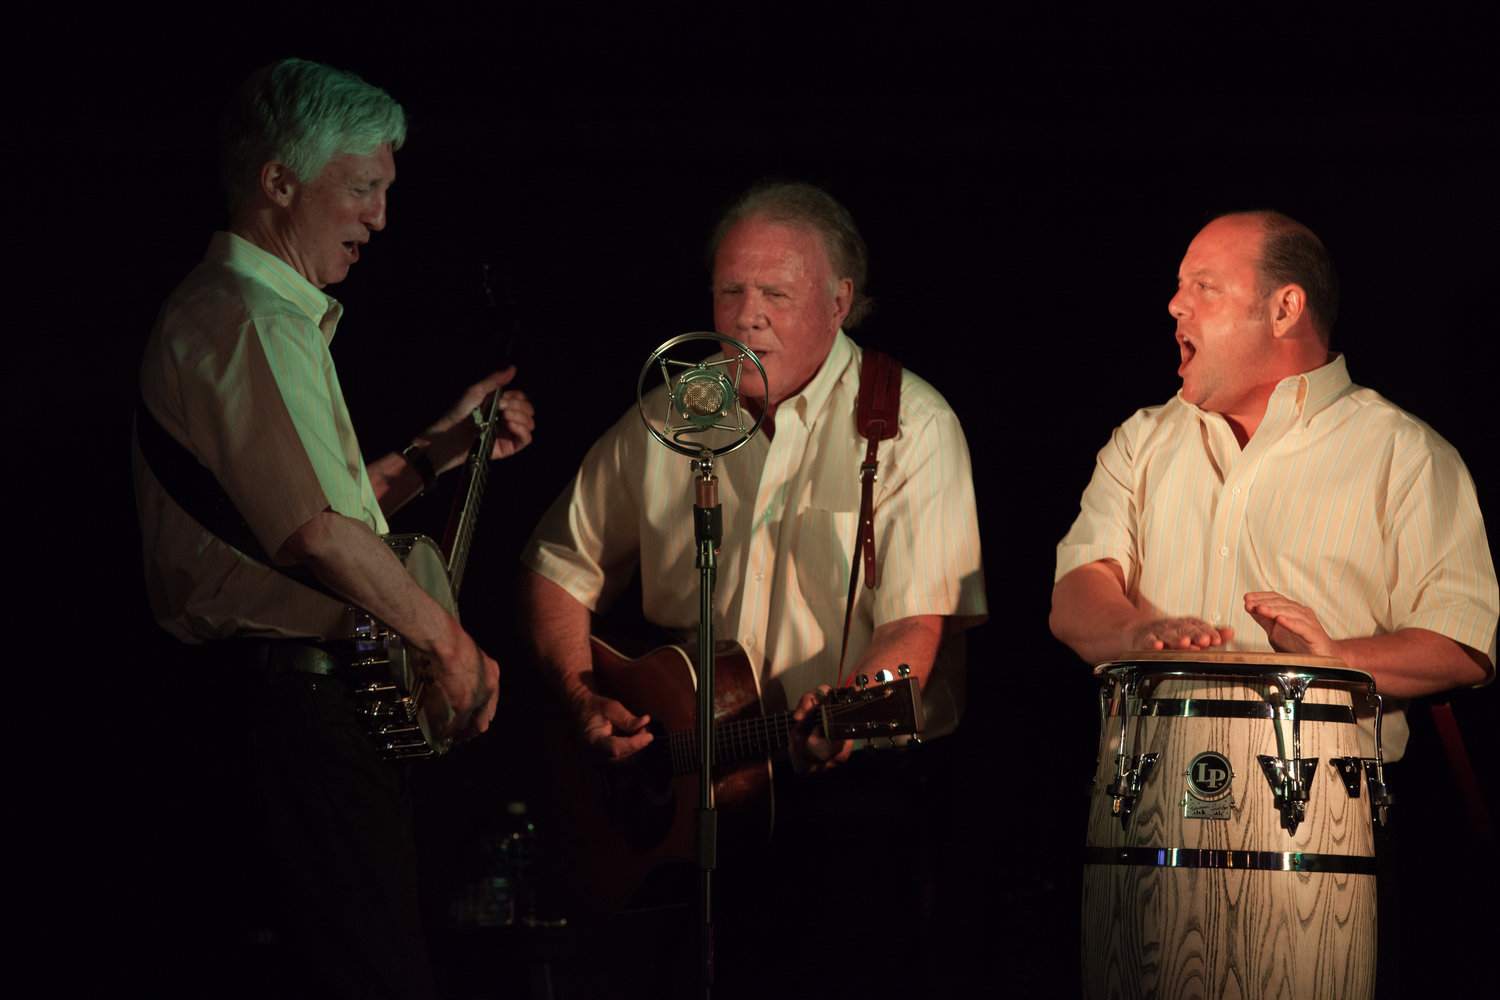 Folk music favorites, The Kingston Trio will be performing atThe Kirkland Performance Center, a unique venue where you can catch some of the brightest stars on stage in an intimate one-of a kind setting. Executive Director Jeff Lockhart gave Seattle Refined an exclusive sneak peek into their exciting 2018-2919 season. Photo courtesy of The Kingston Trio.<p></p>